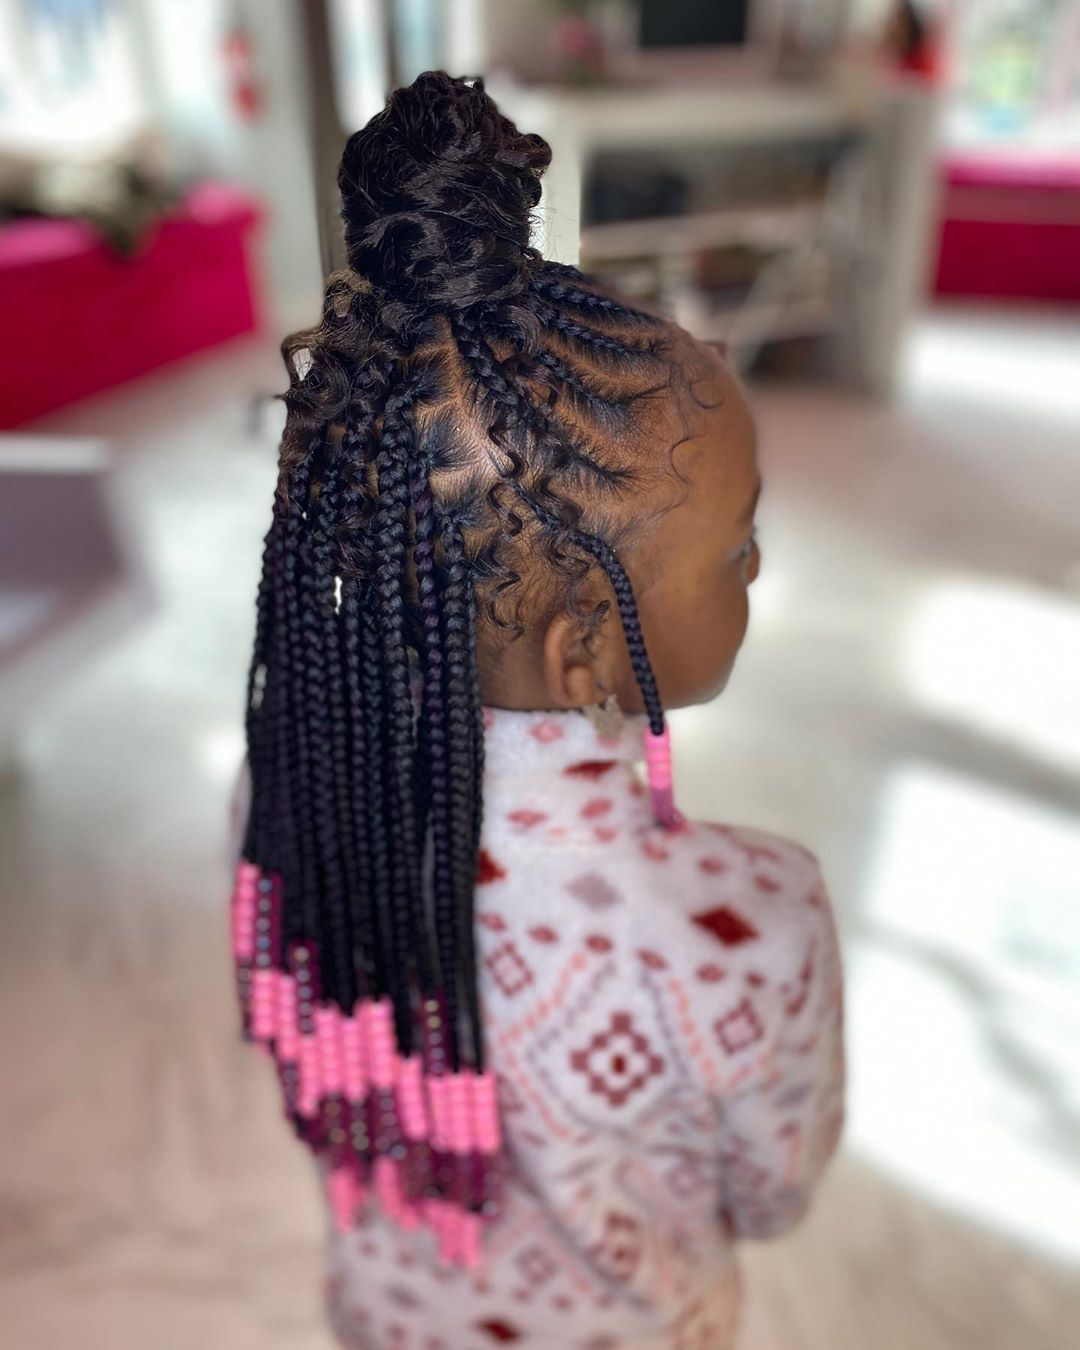 Braidsbyash On Instagram Fun Bun X Knotless On This Queen Trust The Process B In 2020 Kids Hairstyles Black Kids Hairstyles Kids Hairstyles Girls